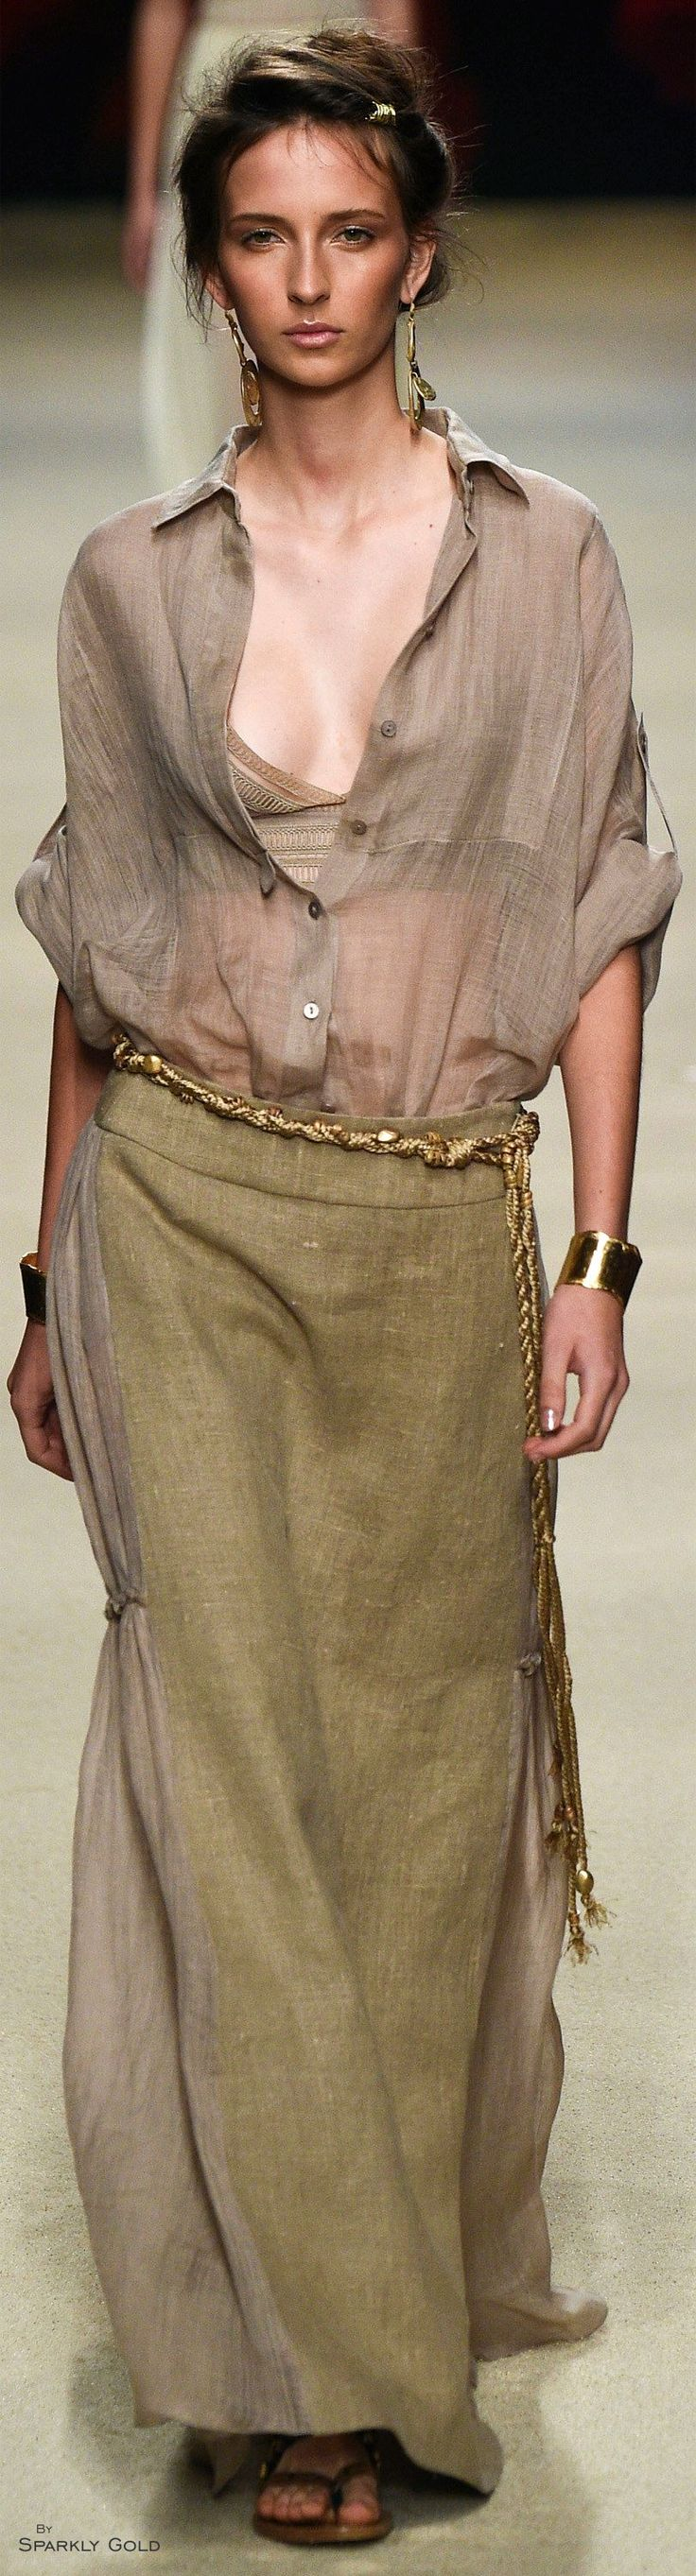 Alberta Ferretti Spring 2016 women fashion outfit clothing style apparel @roressclothes closet ideas